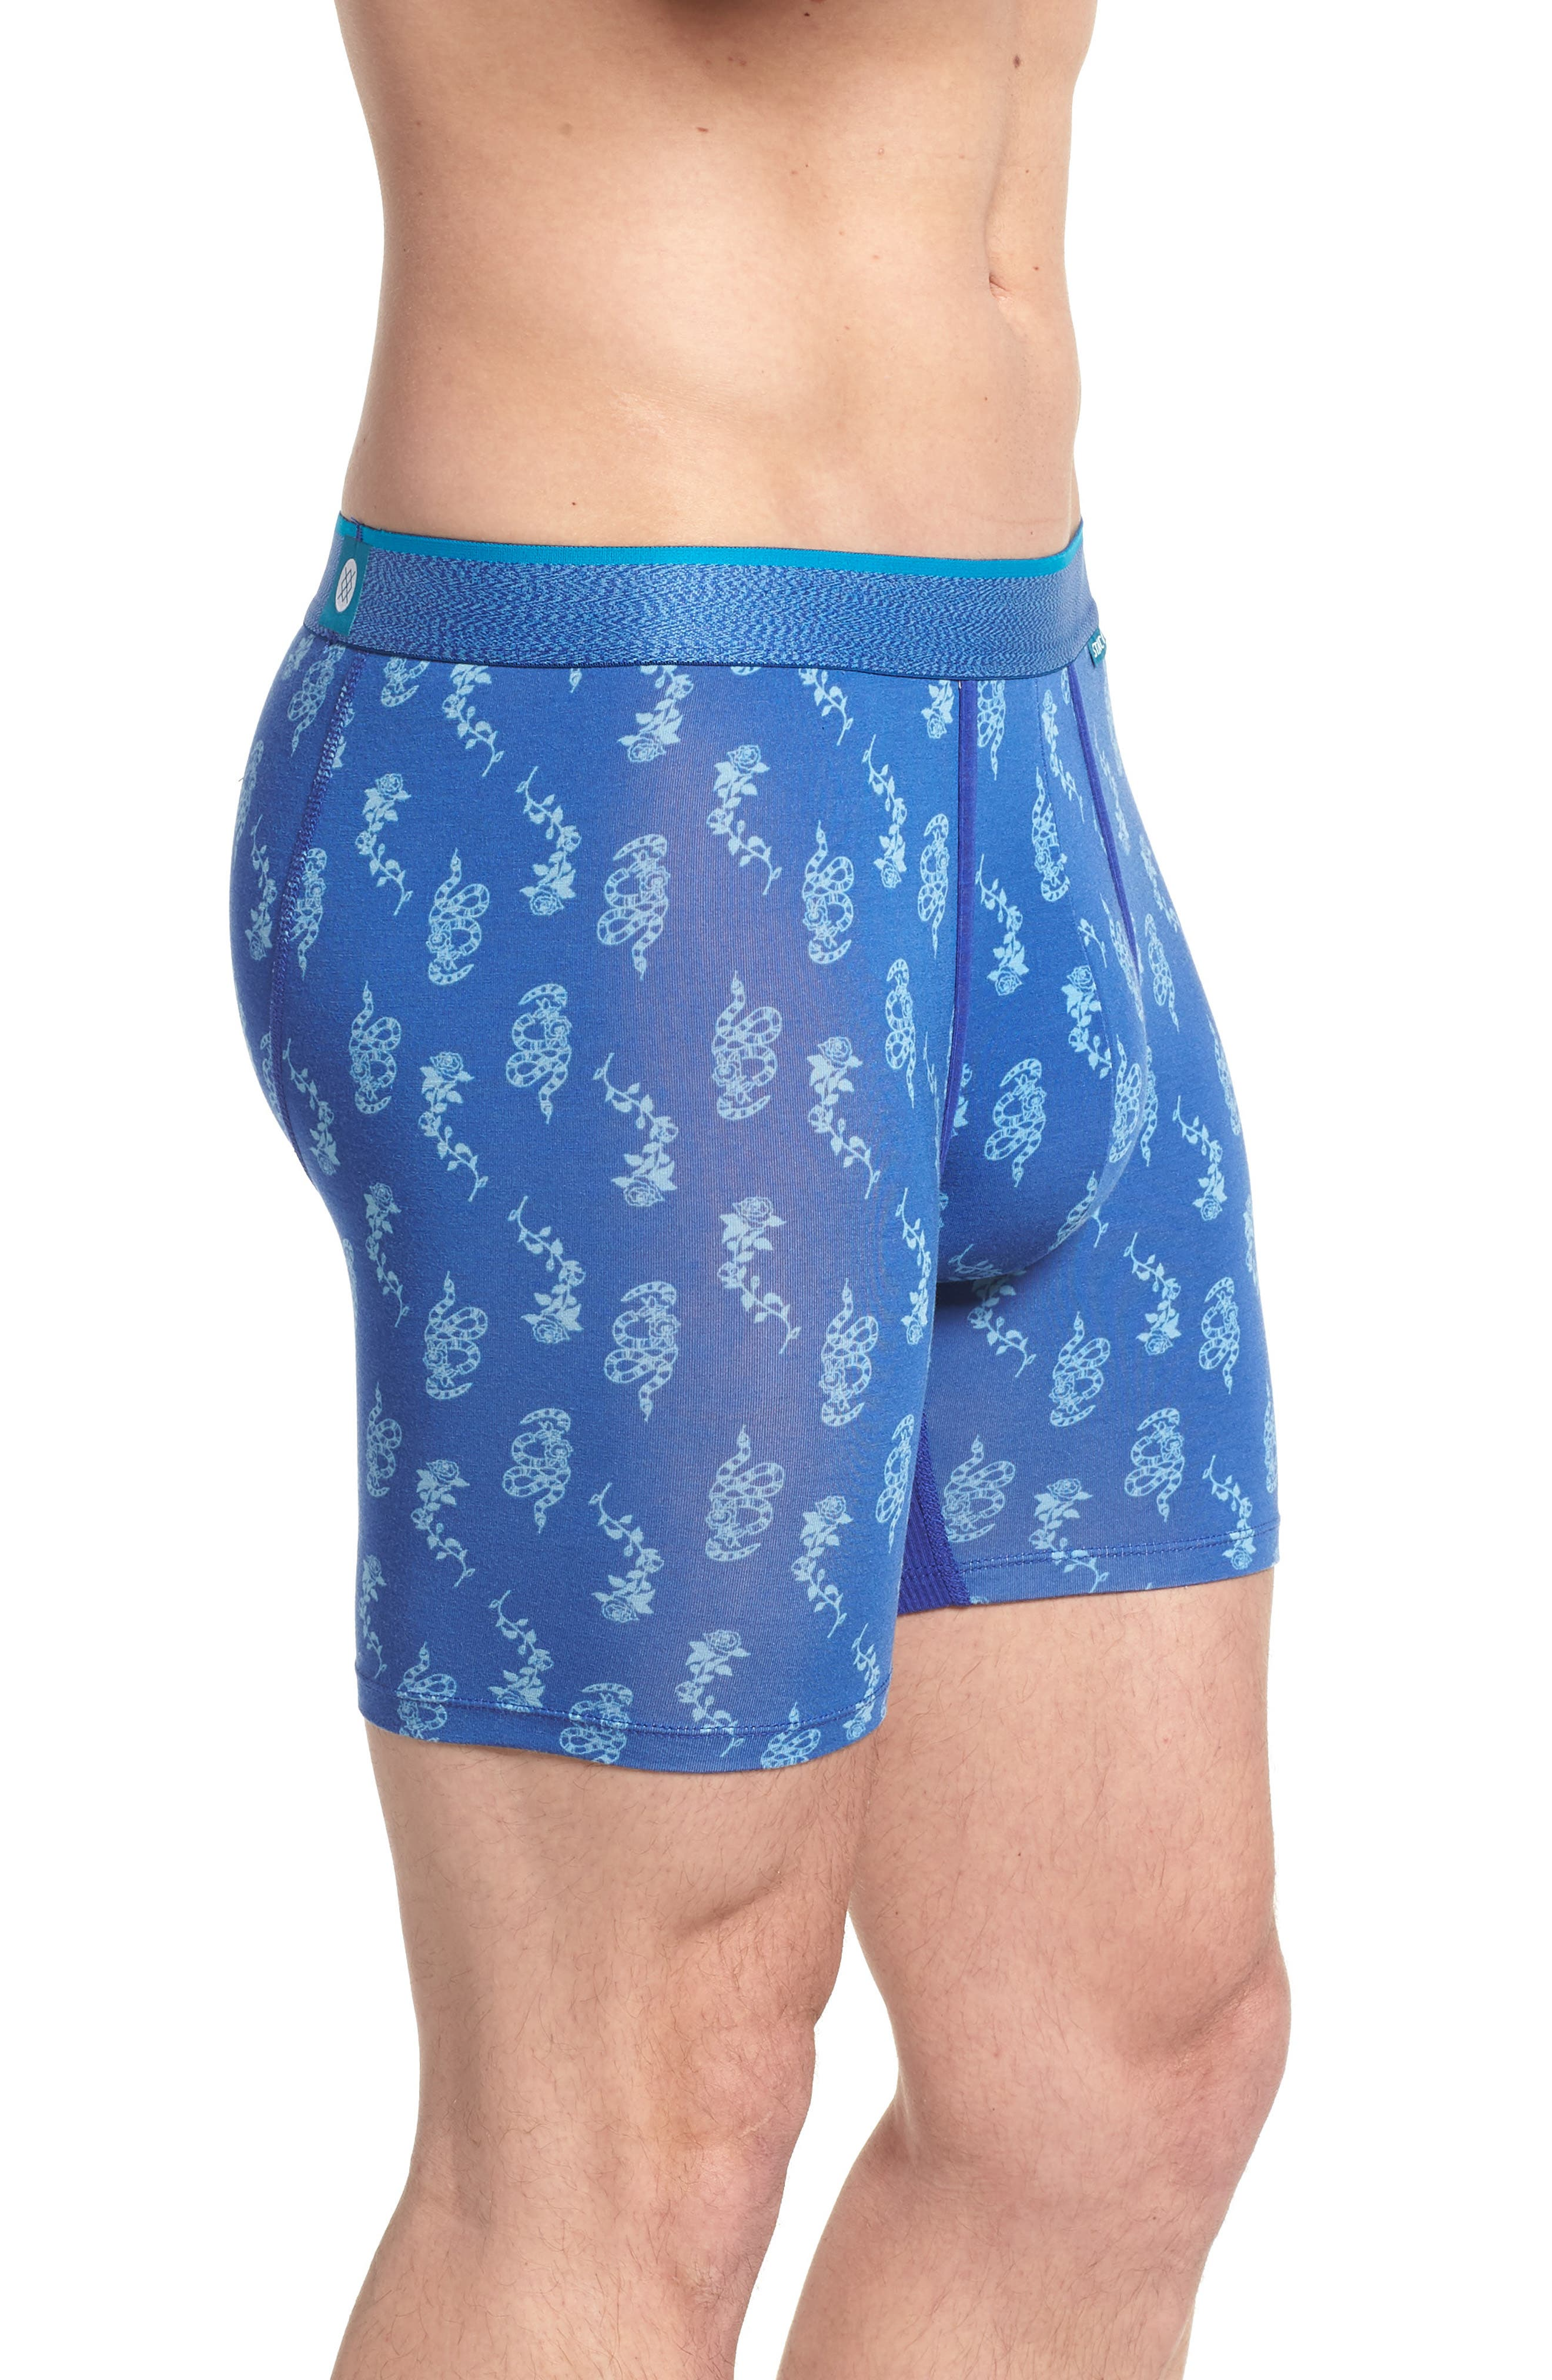 Snake Stamp Wholester Boxer Briefs,                             Alternate thumbnail 3, color,                             Blue